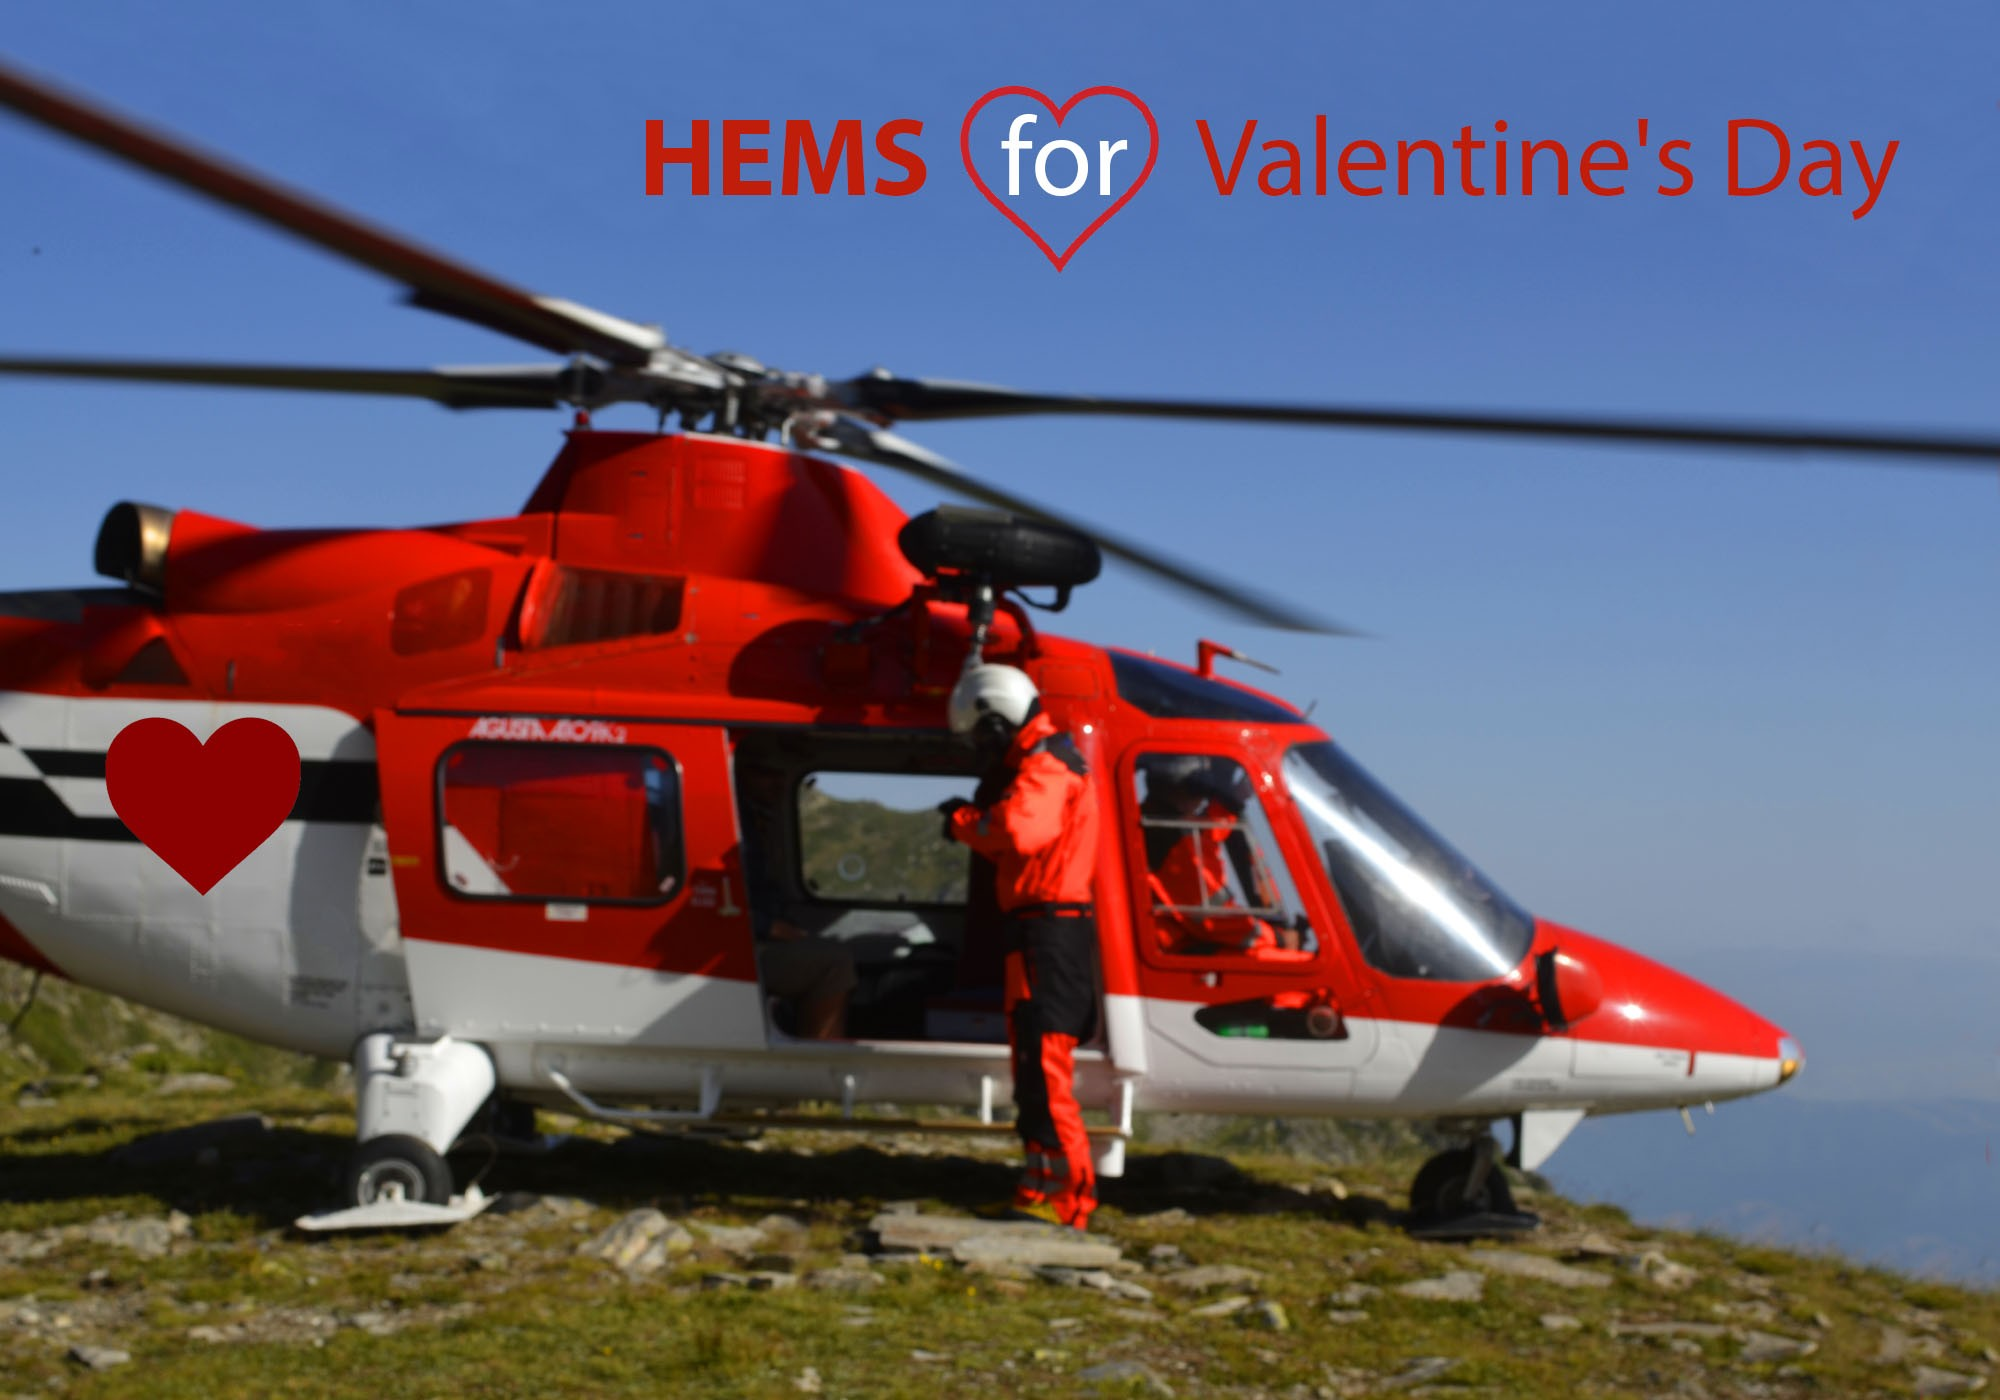 HEMS for Valentine's Day